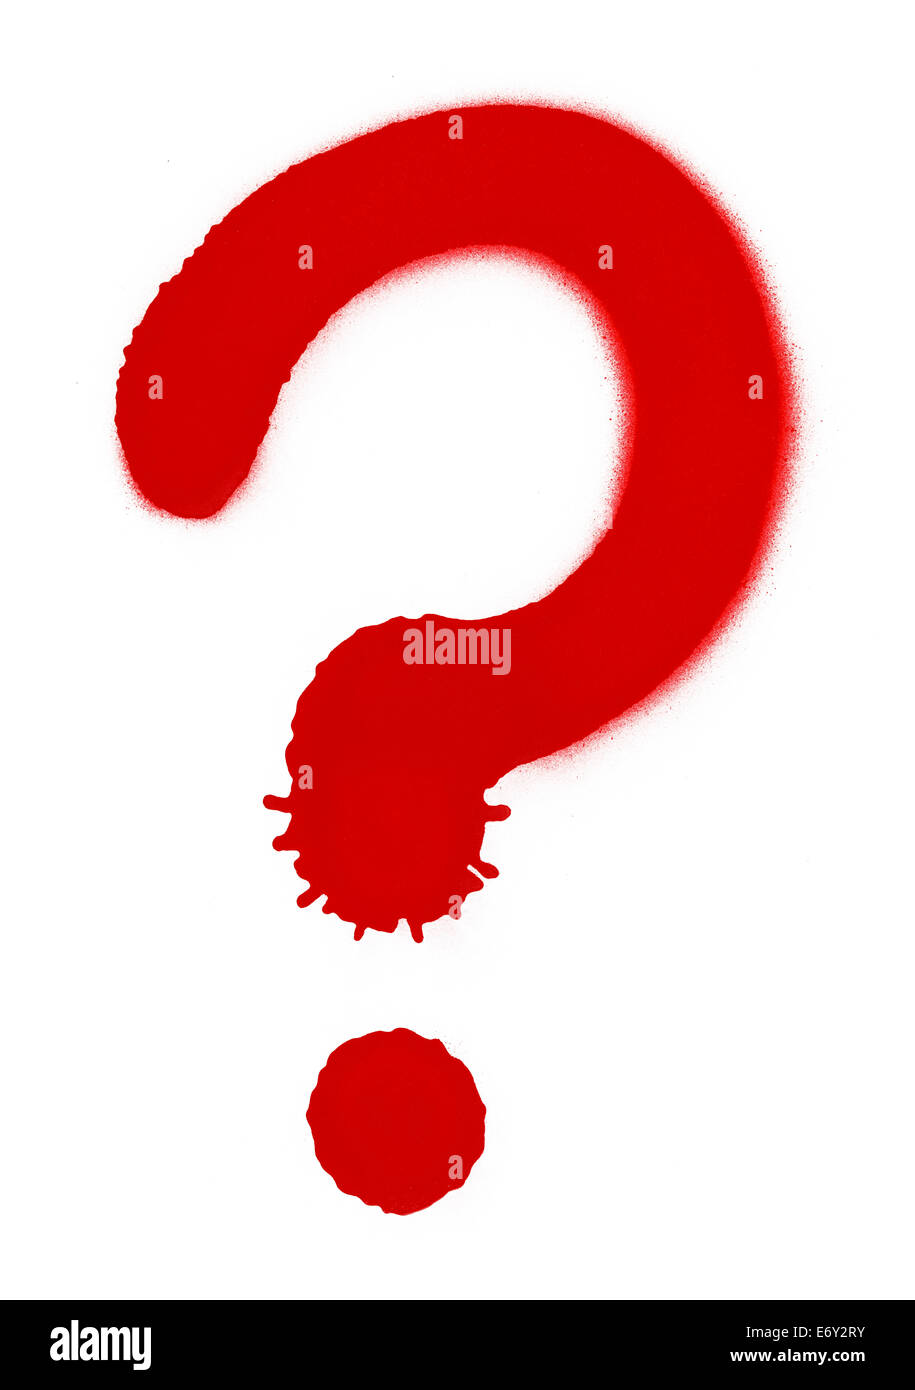 Red Question Mark Isolated on White Background. - Stock Image